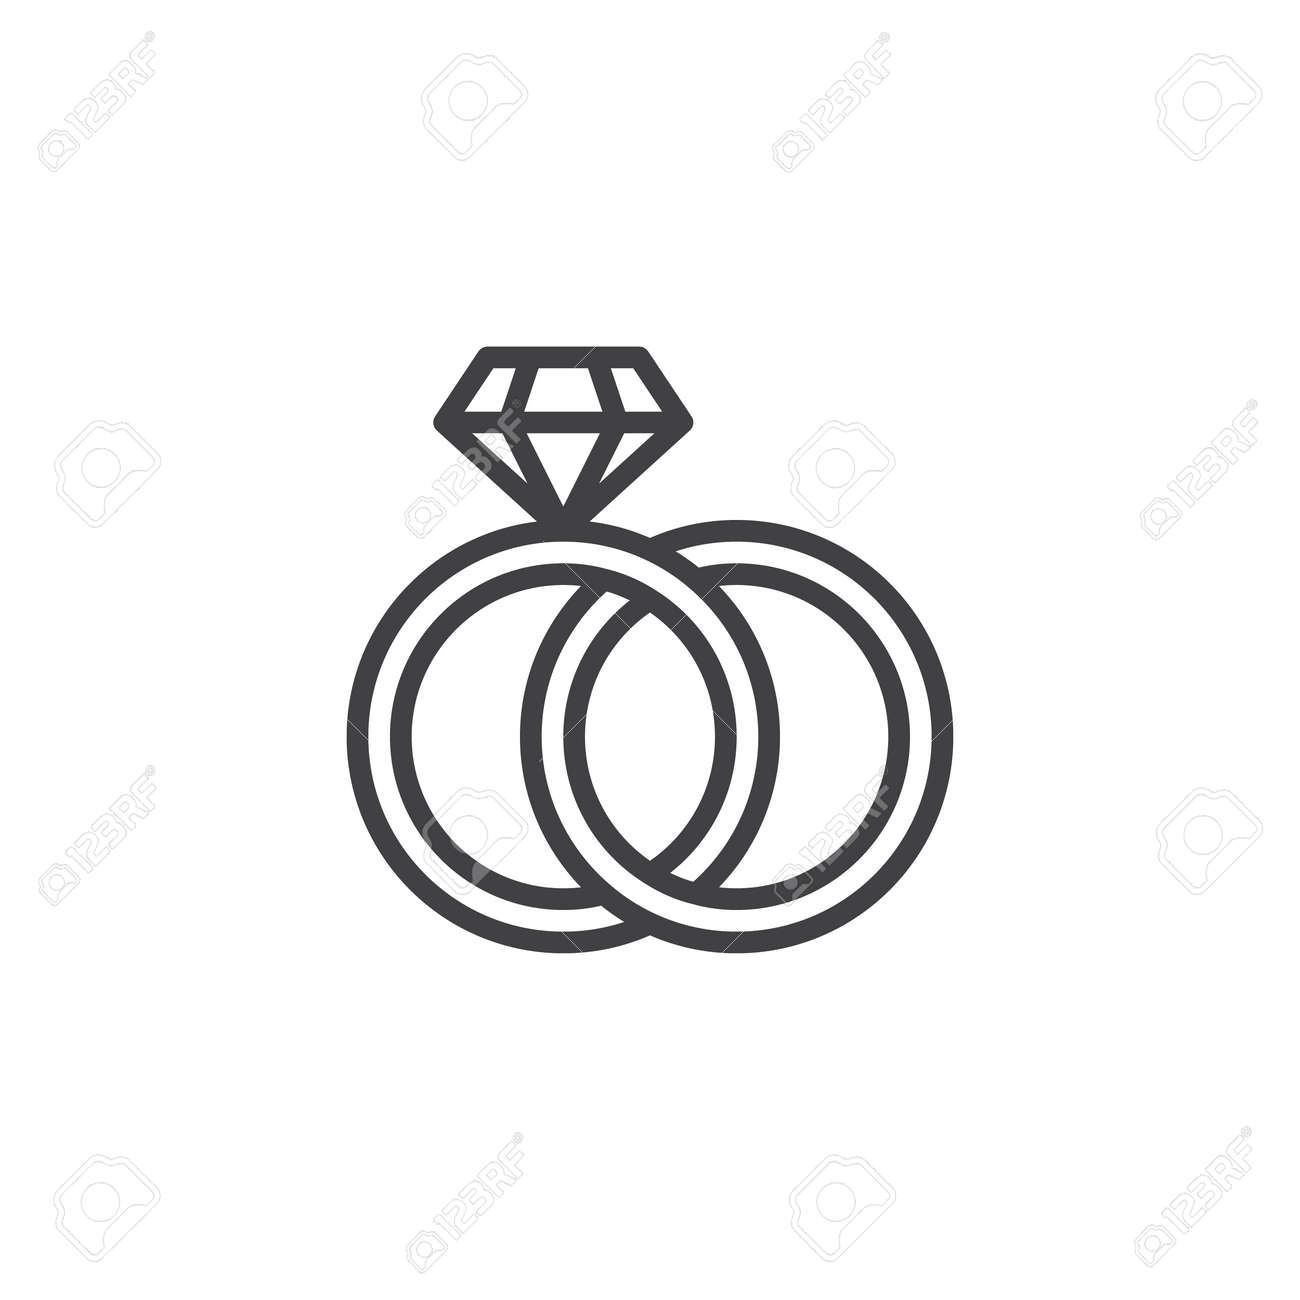 Engagement Rings Outline Icon Linear Style Sign For Mobile Concept